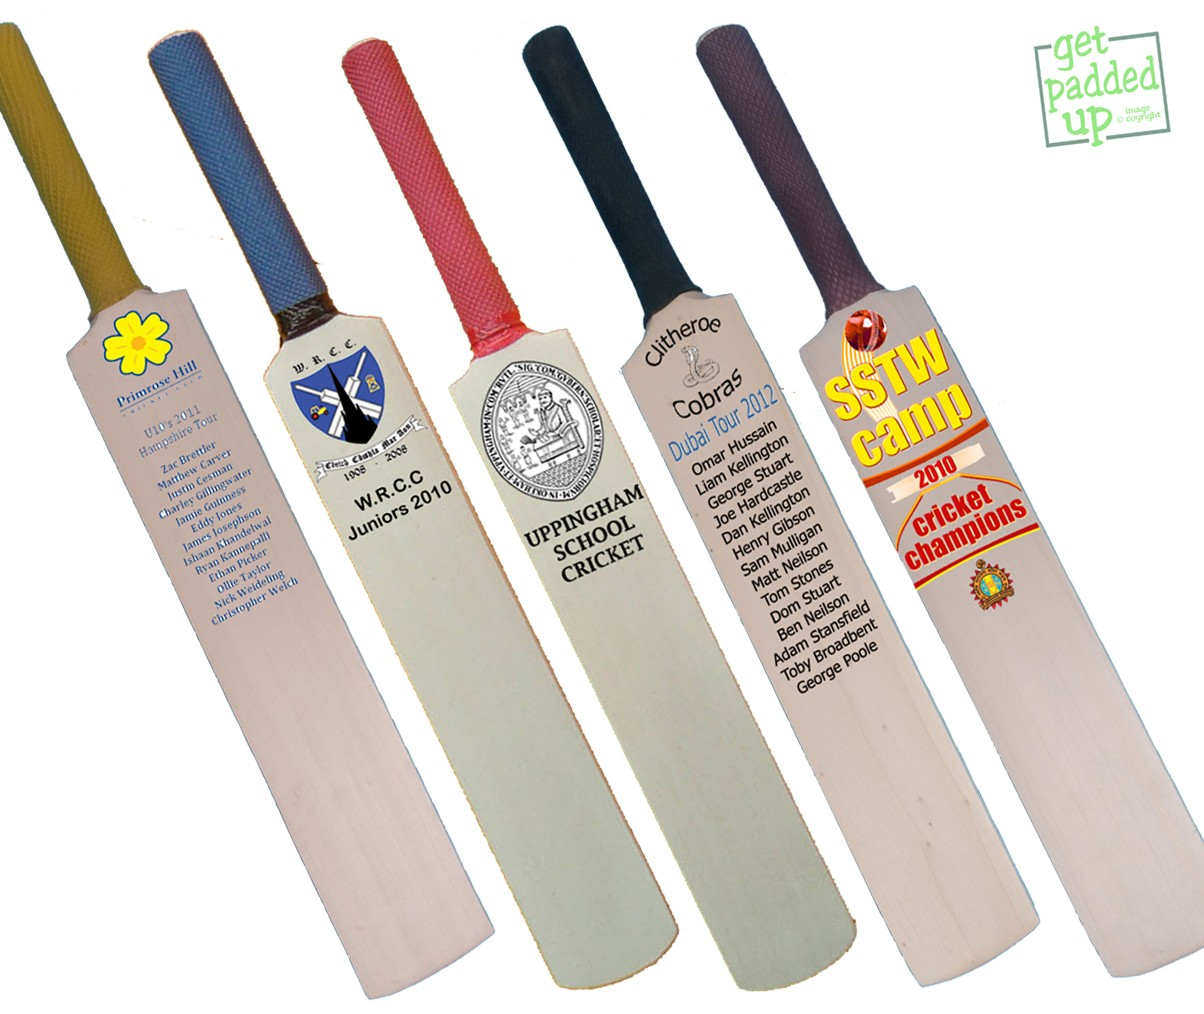 Personalised Trophy Miniature Cricket Bat